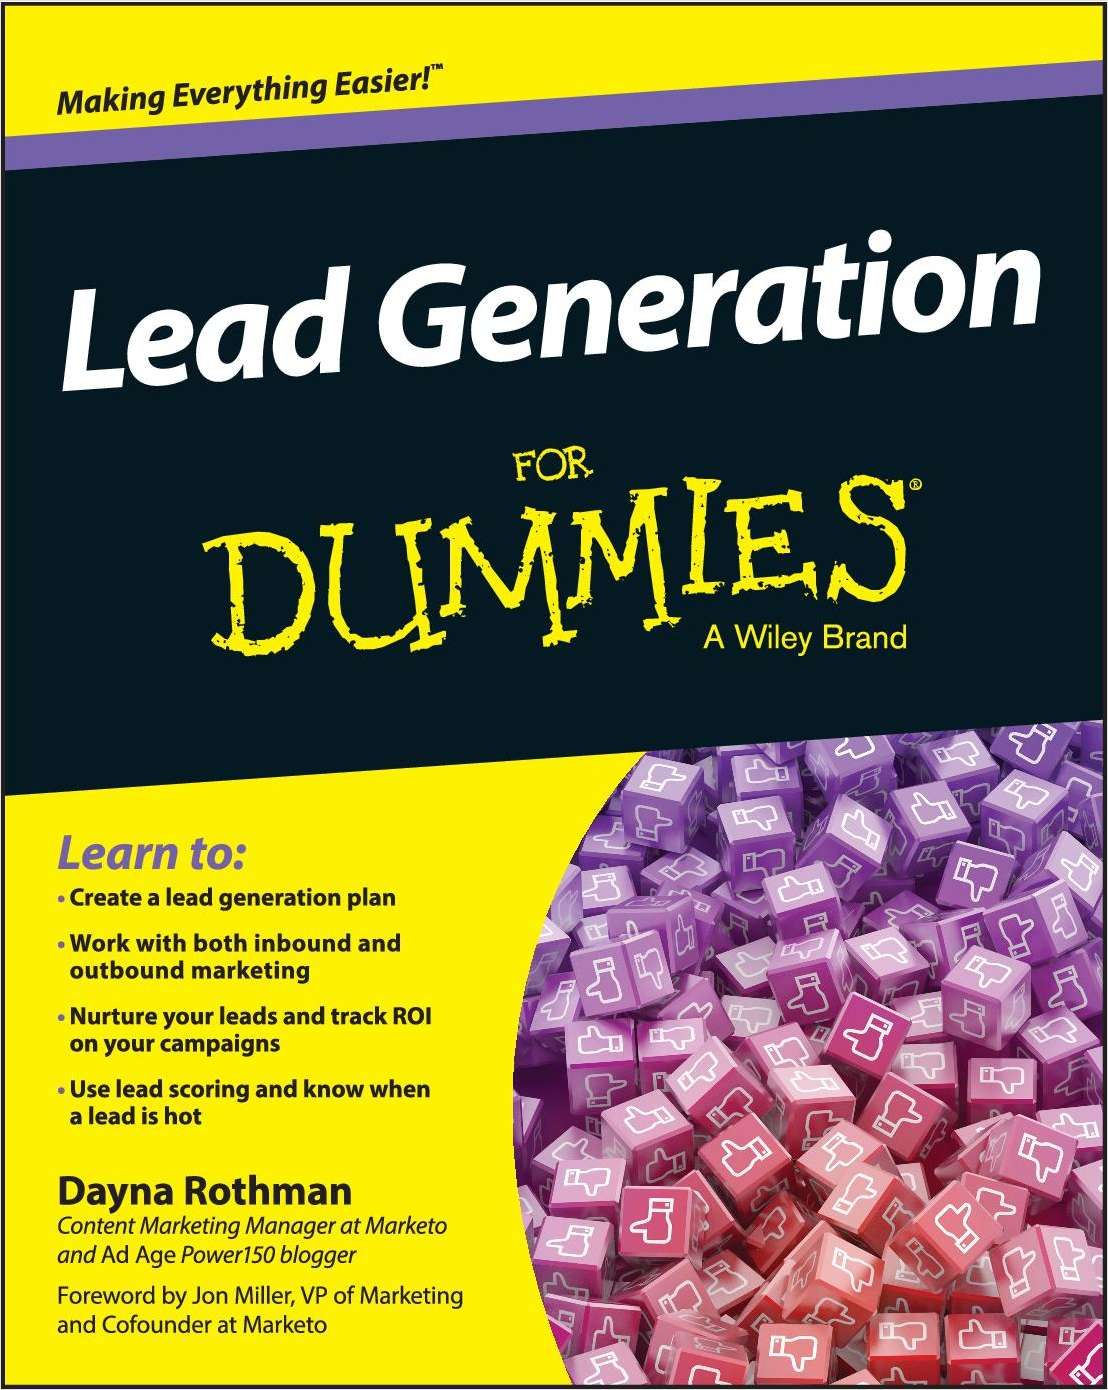 Lead Generation for Dummies - Free Sample Chapter